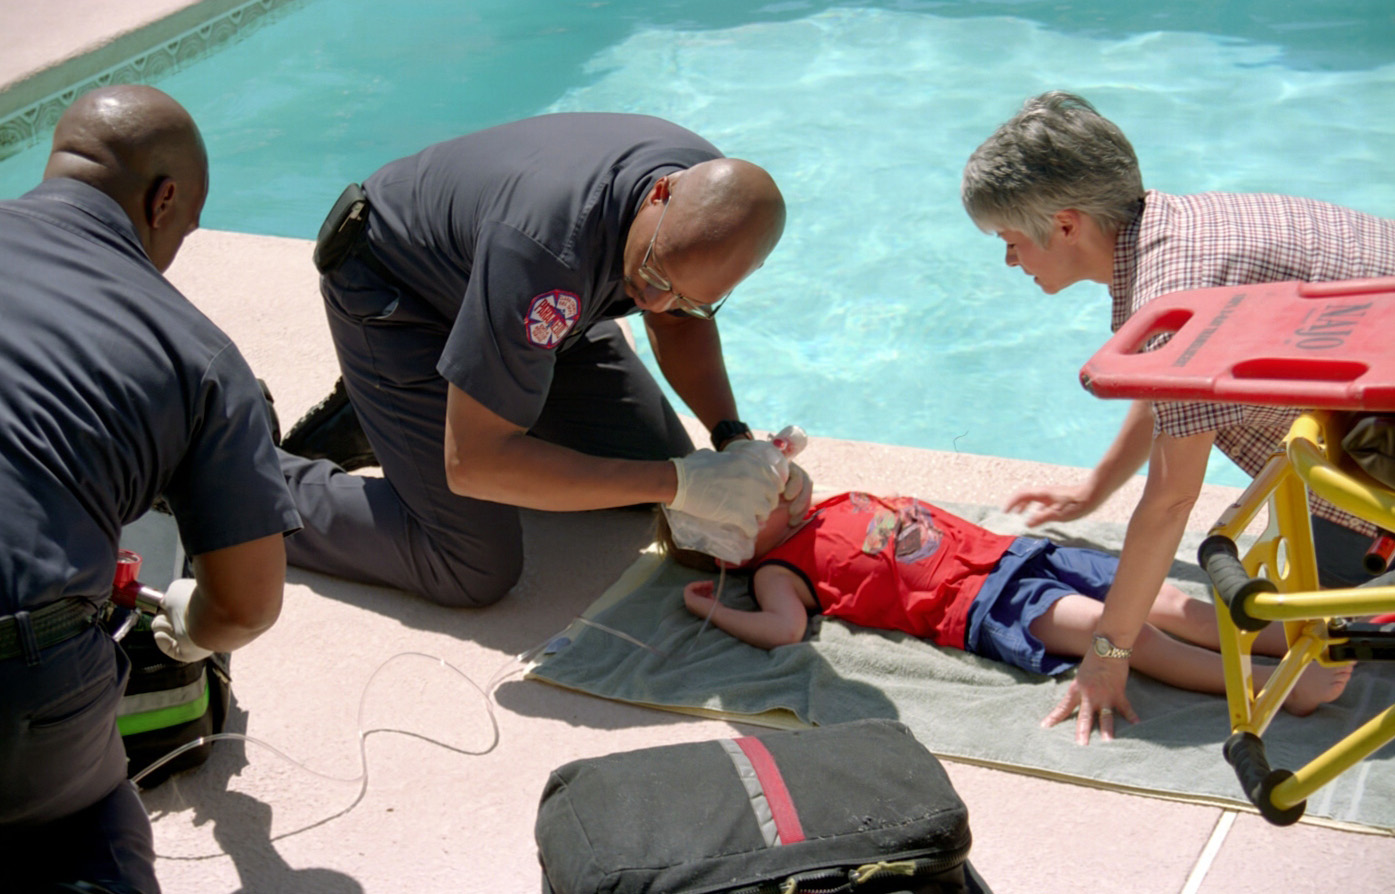 drowning and swimming pools The slidell police department is investigating the death of 4-year-old timothy brooks, who was found unresponsive in a swimming pool monday evening.